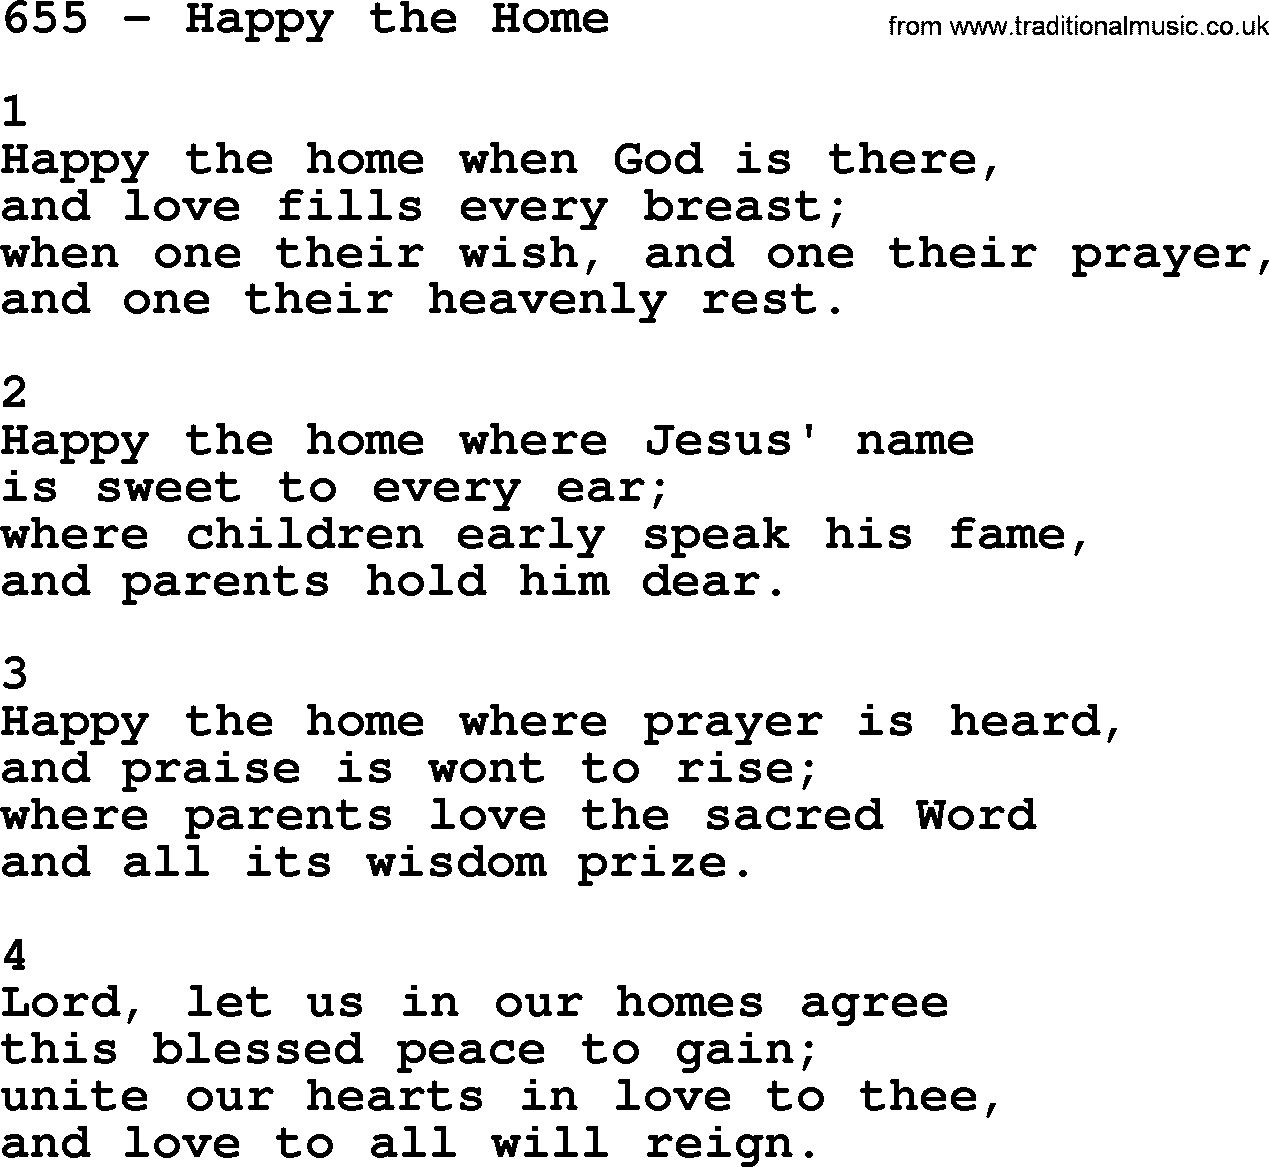 Adventist Hymnal, Song: 655-Happy The Home, with Lyrics, PPT